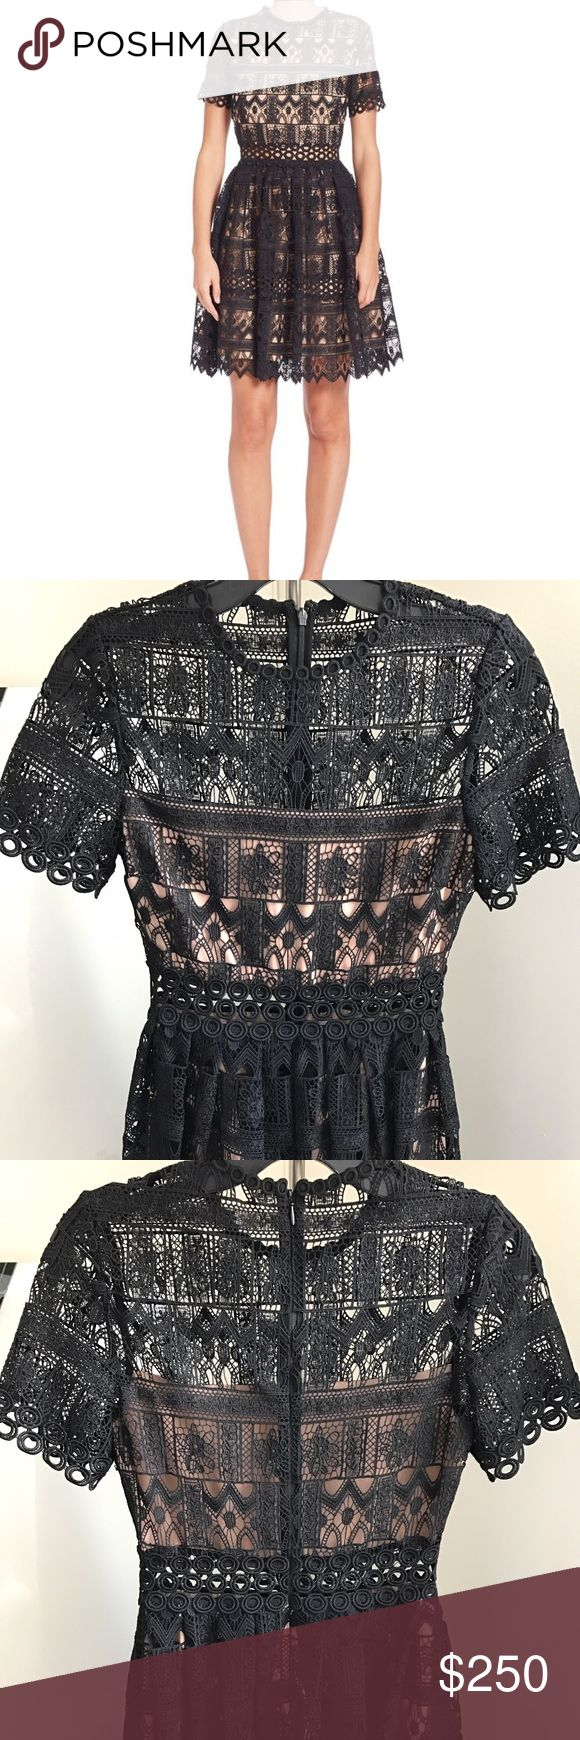 Alexis Lula Lace Dress - NWT A romantic lace Alexis dress with sheer panels at the yoke and waist. Crew neckline. Short sleeves. Hidden back zip. Partially lined. Brand new with tags. Retails $594.00. Alexis Dresses Mini